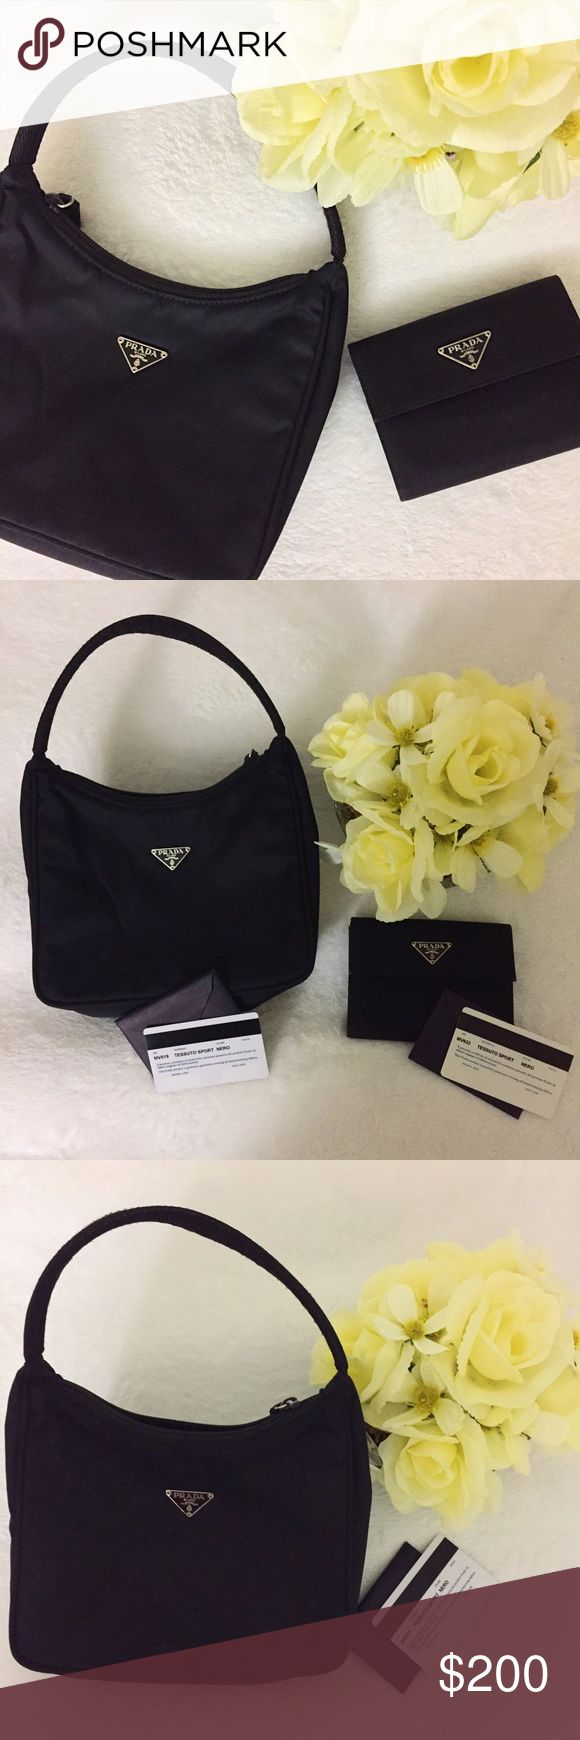 """PRADA mini shoulder bag and wallet BUNDLE BAG: Prada MV515 Tessuto Sport Bag in Black Vela Nylon. Zip top closure. One main compartment with enough space for daily necessities. Size: 8""""W x 6.25""""H x 2.75""""D; Strap: 6"""" ---- WALLET: PRADA Tessuto Nylon French Wallet Nero Black; opens with a strap to a cross-grain leather interior with card slots, patch pockets and a bill fold and a flap opens to a currency compartment. 5""""Lx4""""Hx1""""D. Both preloved but EUC. No dust bags/boxes. Prada Bags Mini Bags"""